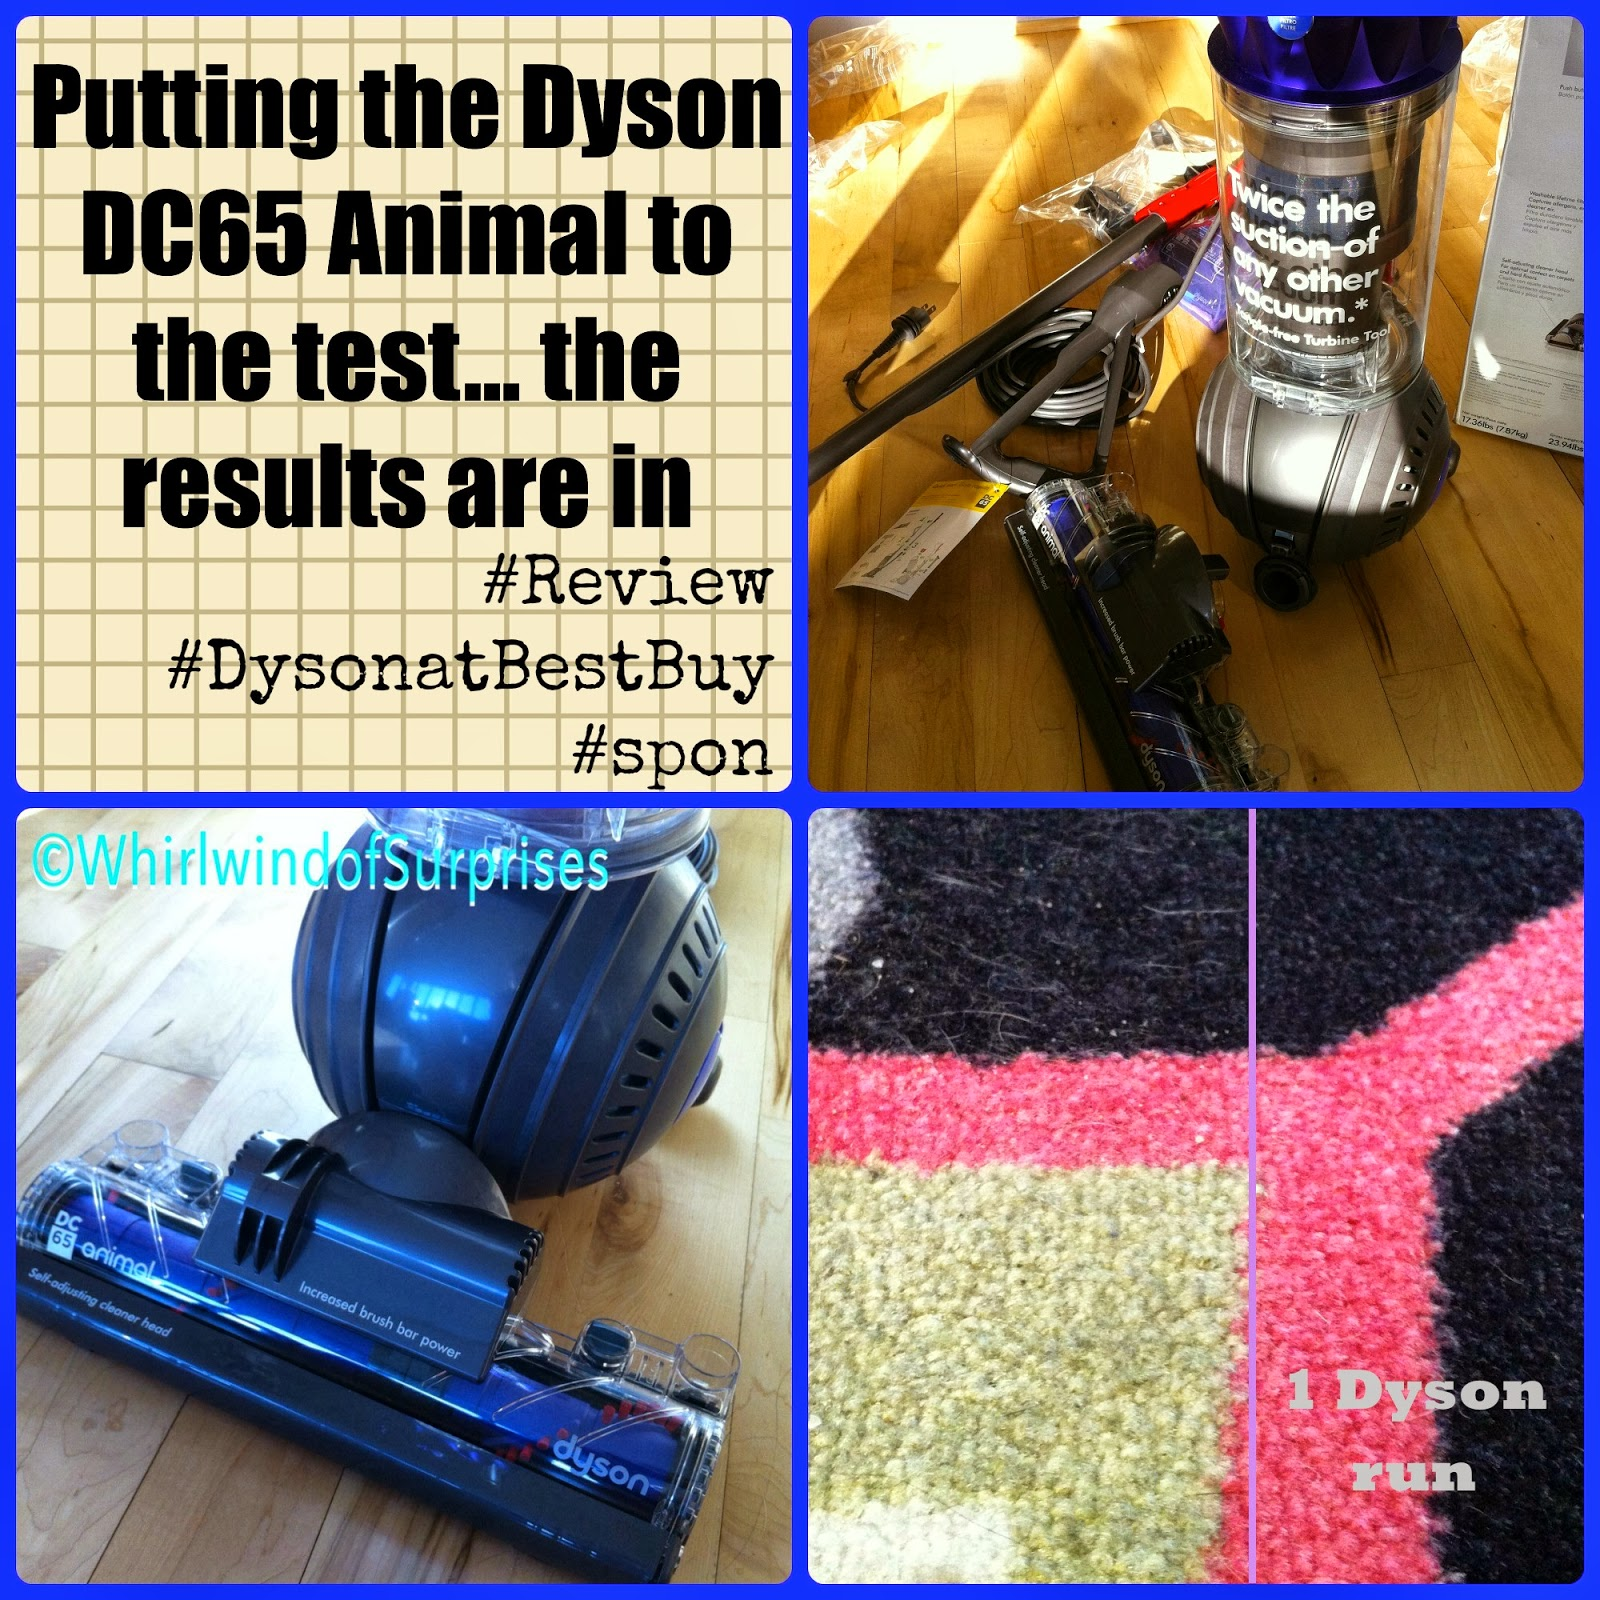 Putting the Dyson DC65 Animal to the test, the results are in, #DysonatBestBuy #review